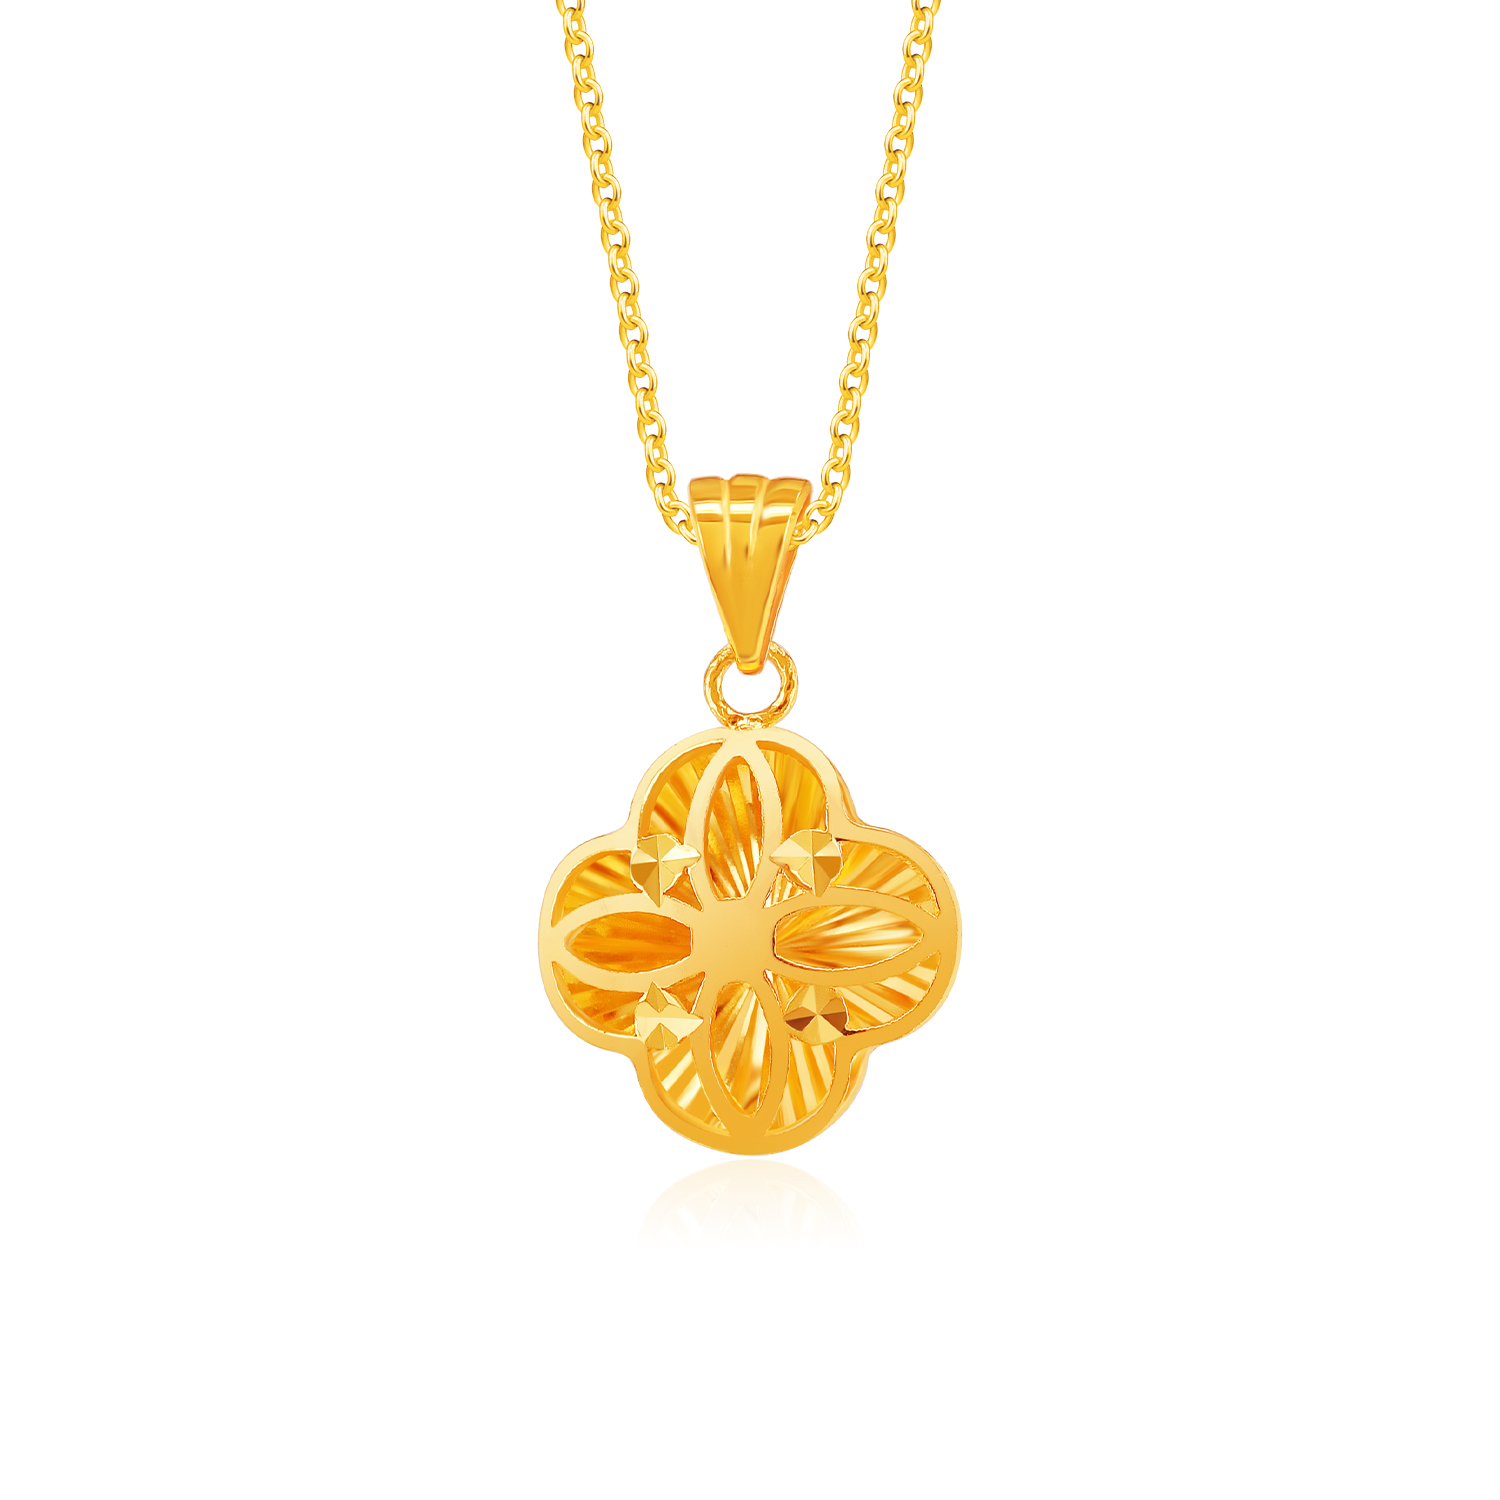 SK 916 Be My Lady Luck Gold Pendant